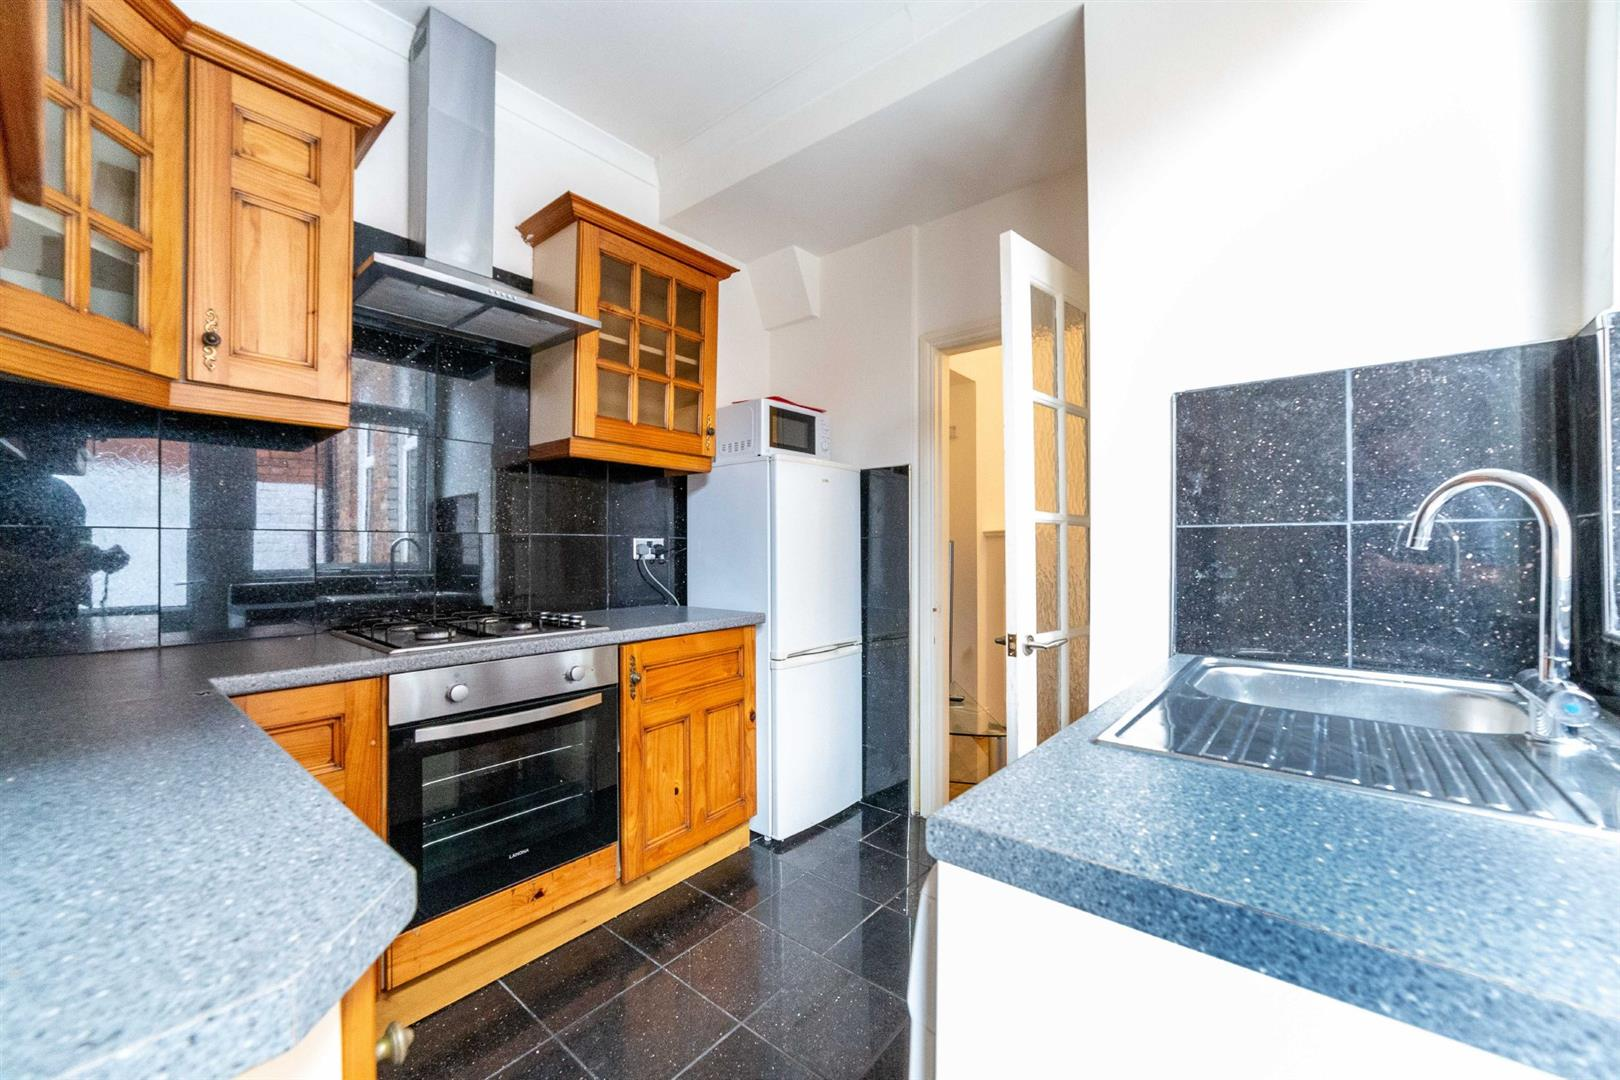 2 bed flat to rent in Newcastle Upon Tyne, NE2 2NJ  - Property Image 2